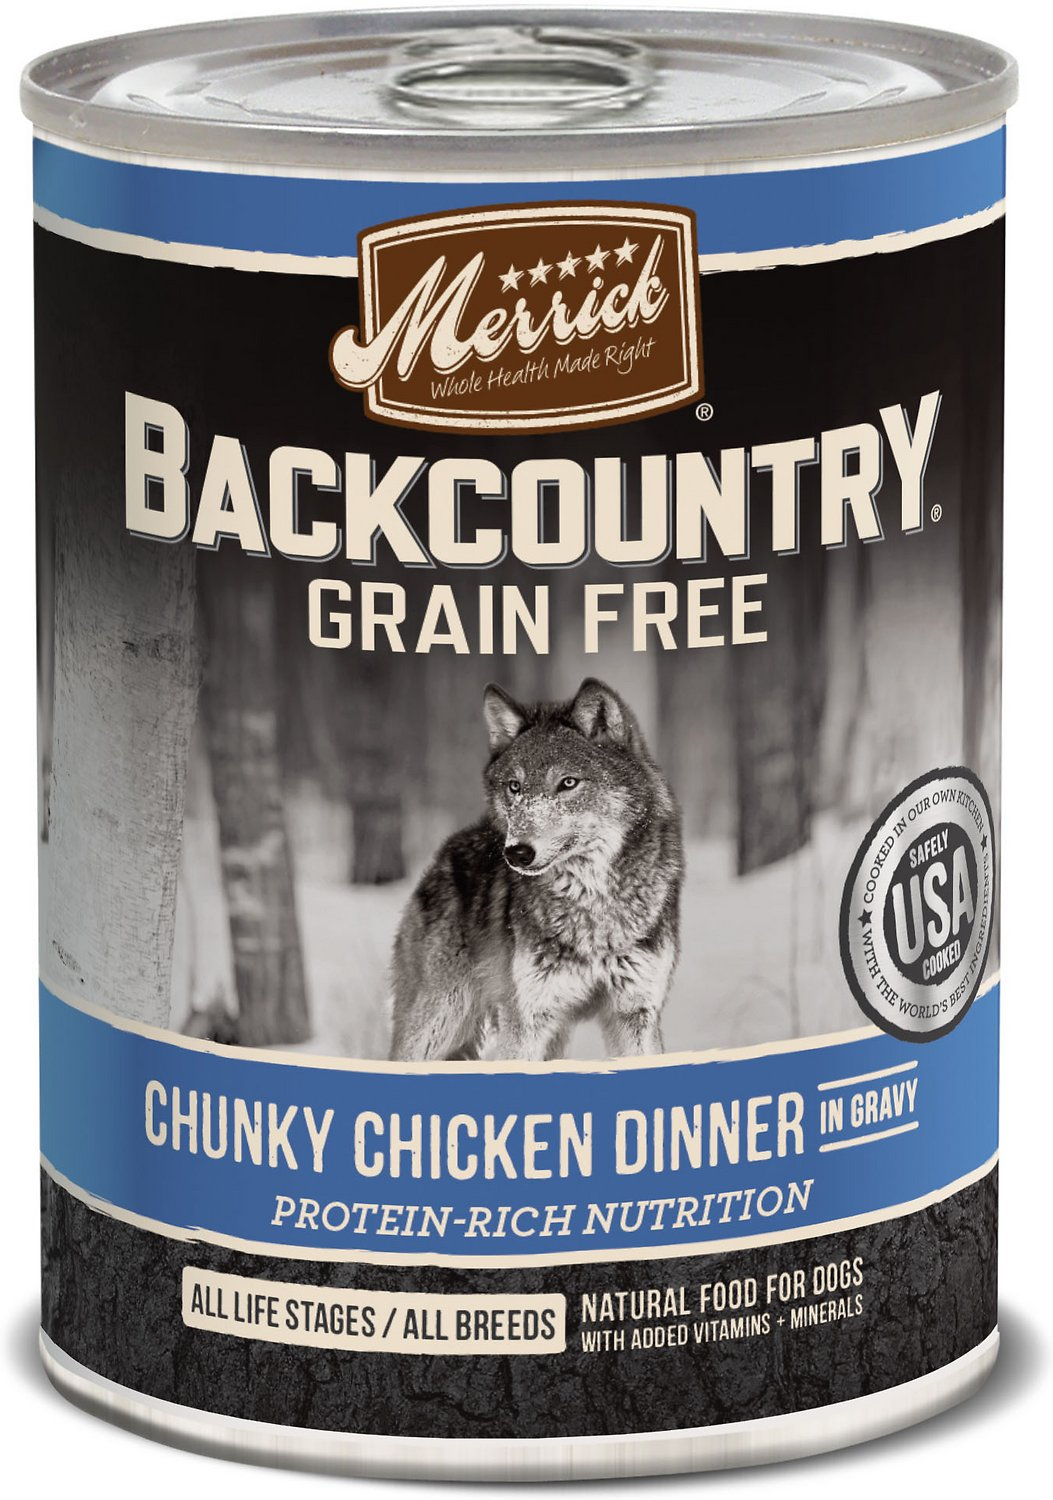 Merrick Backcountry Grain-Free Chunky Chicken Dinner in Gravy Canned Dog Food Image